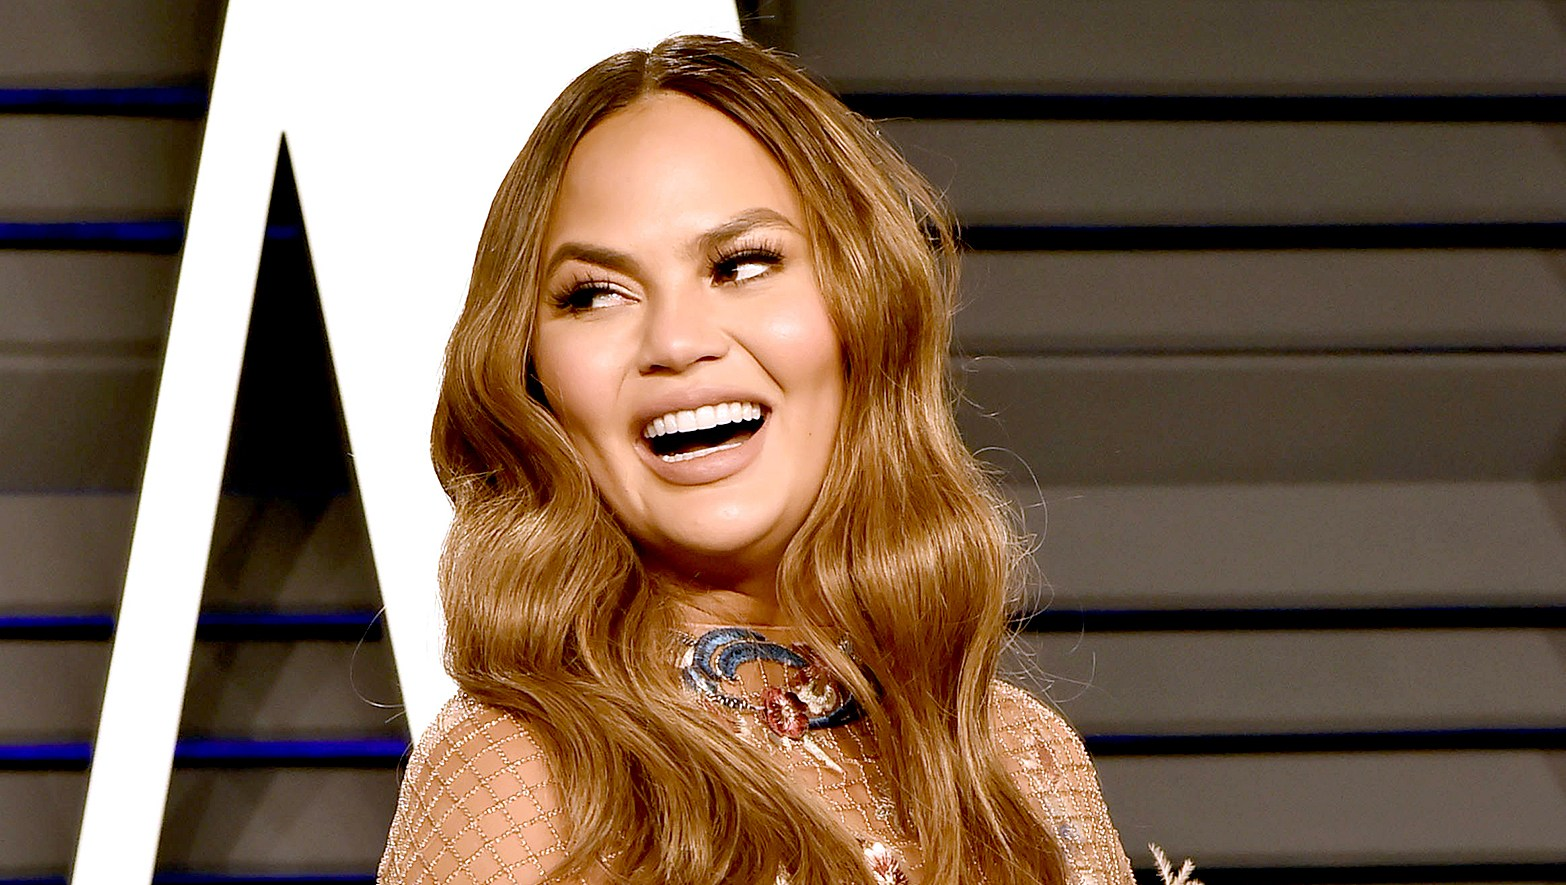 Chrissy-Teigen-Pokes-Fun-at-College-Admissions-Scam-With-Photoshop